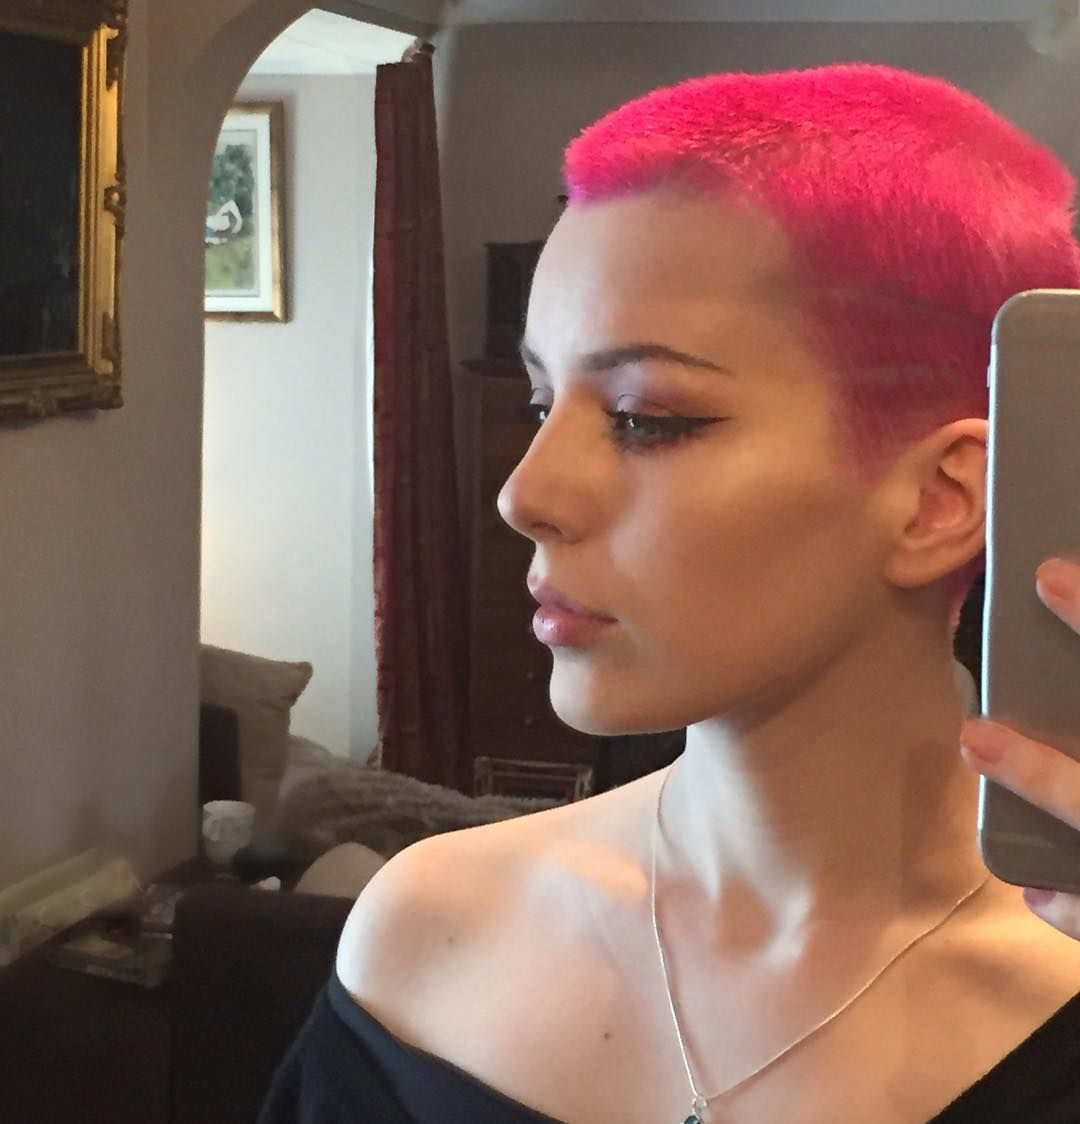 Lilith Ink On Instagram So I Dyed My Hair Pink And Convinced My Mum To Do It Too We Now Look Like Cute Shaved Hair Designs Buzzed Hair Women Dye My Hair